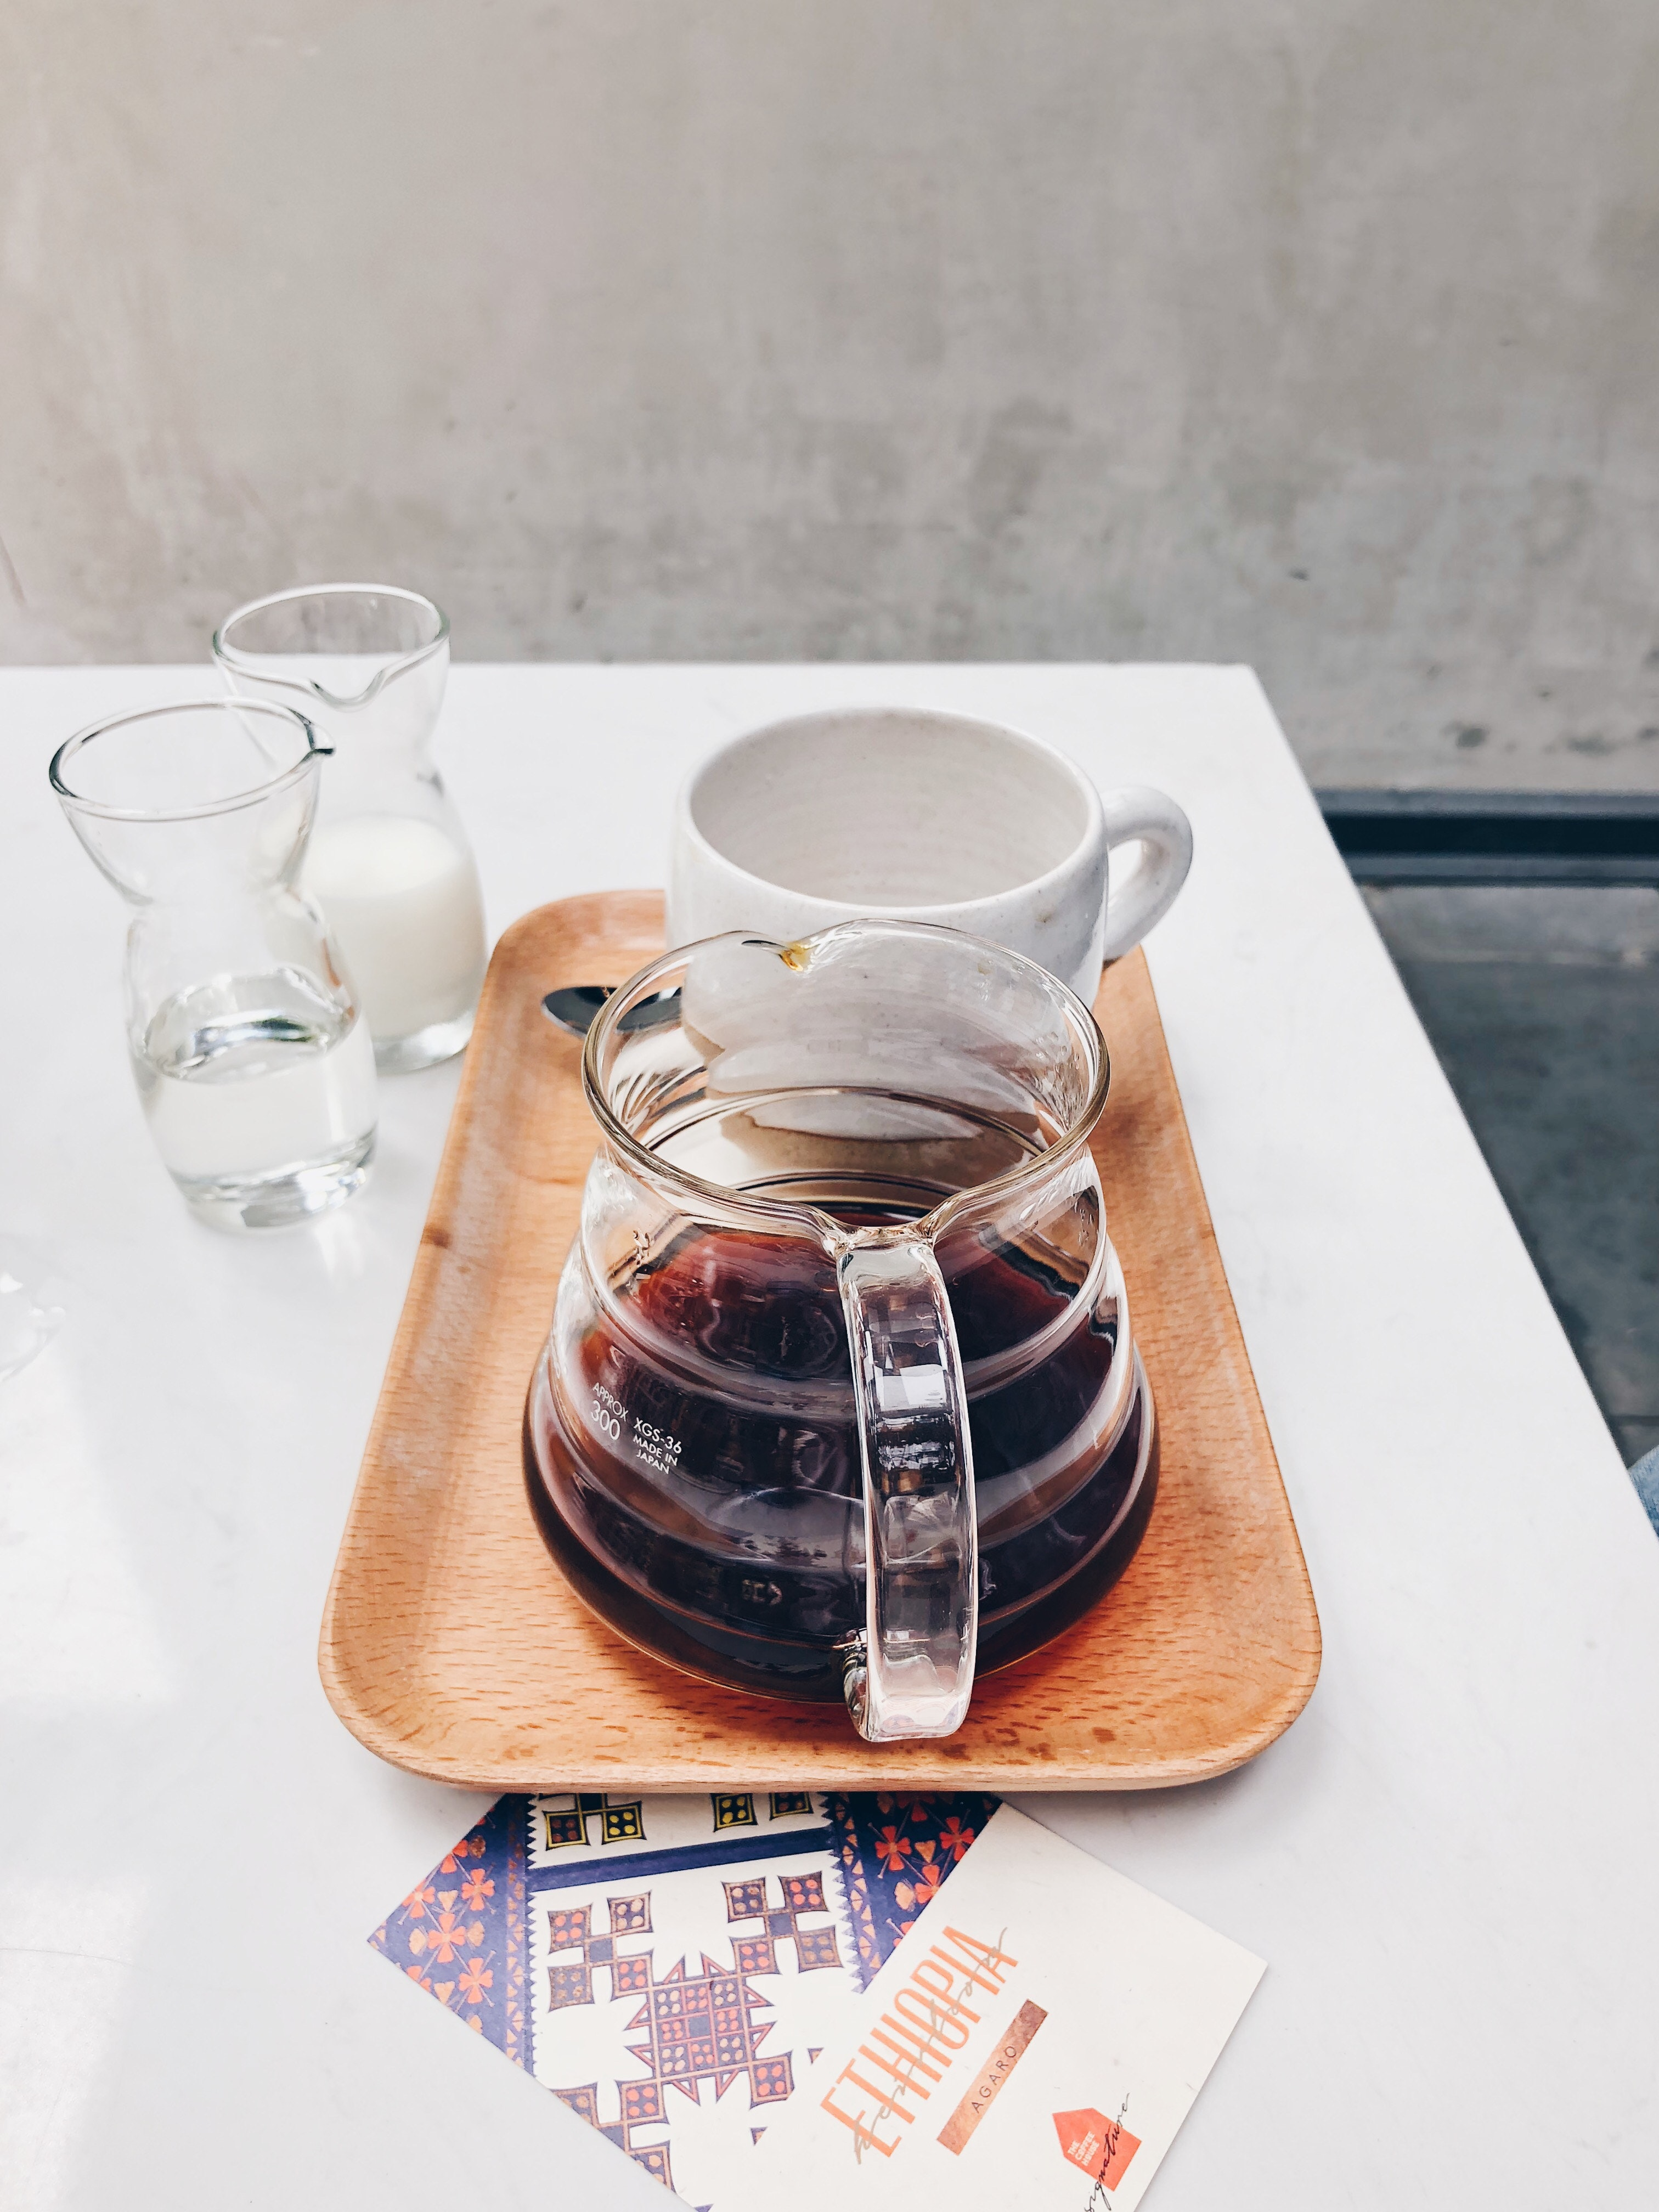 Clear glass coffee pot near white mug on brown tray photo